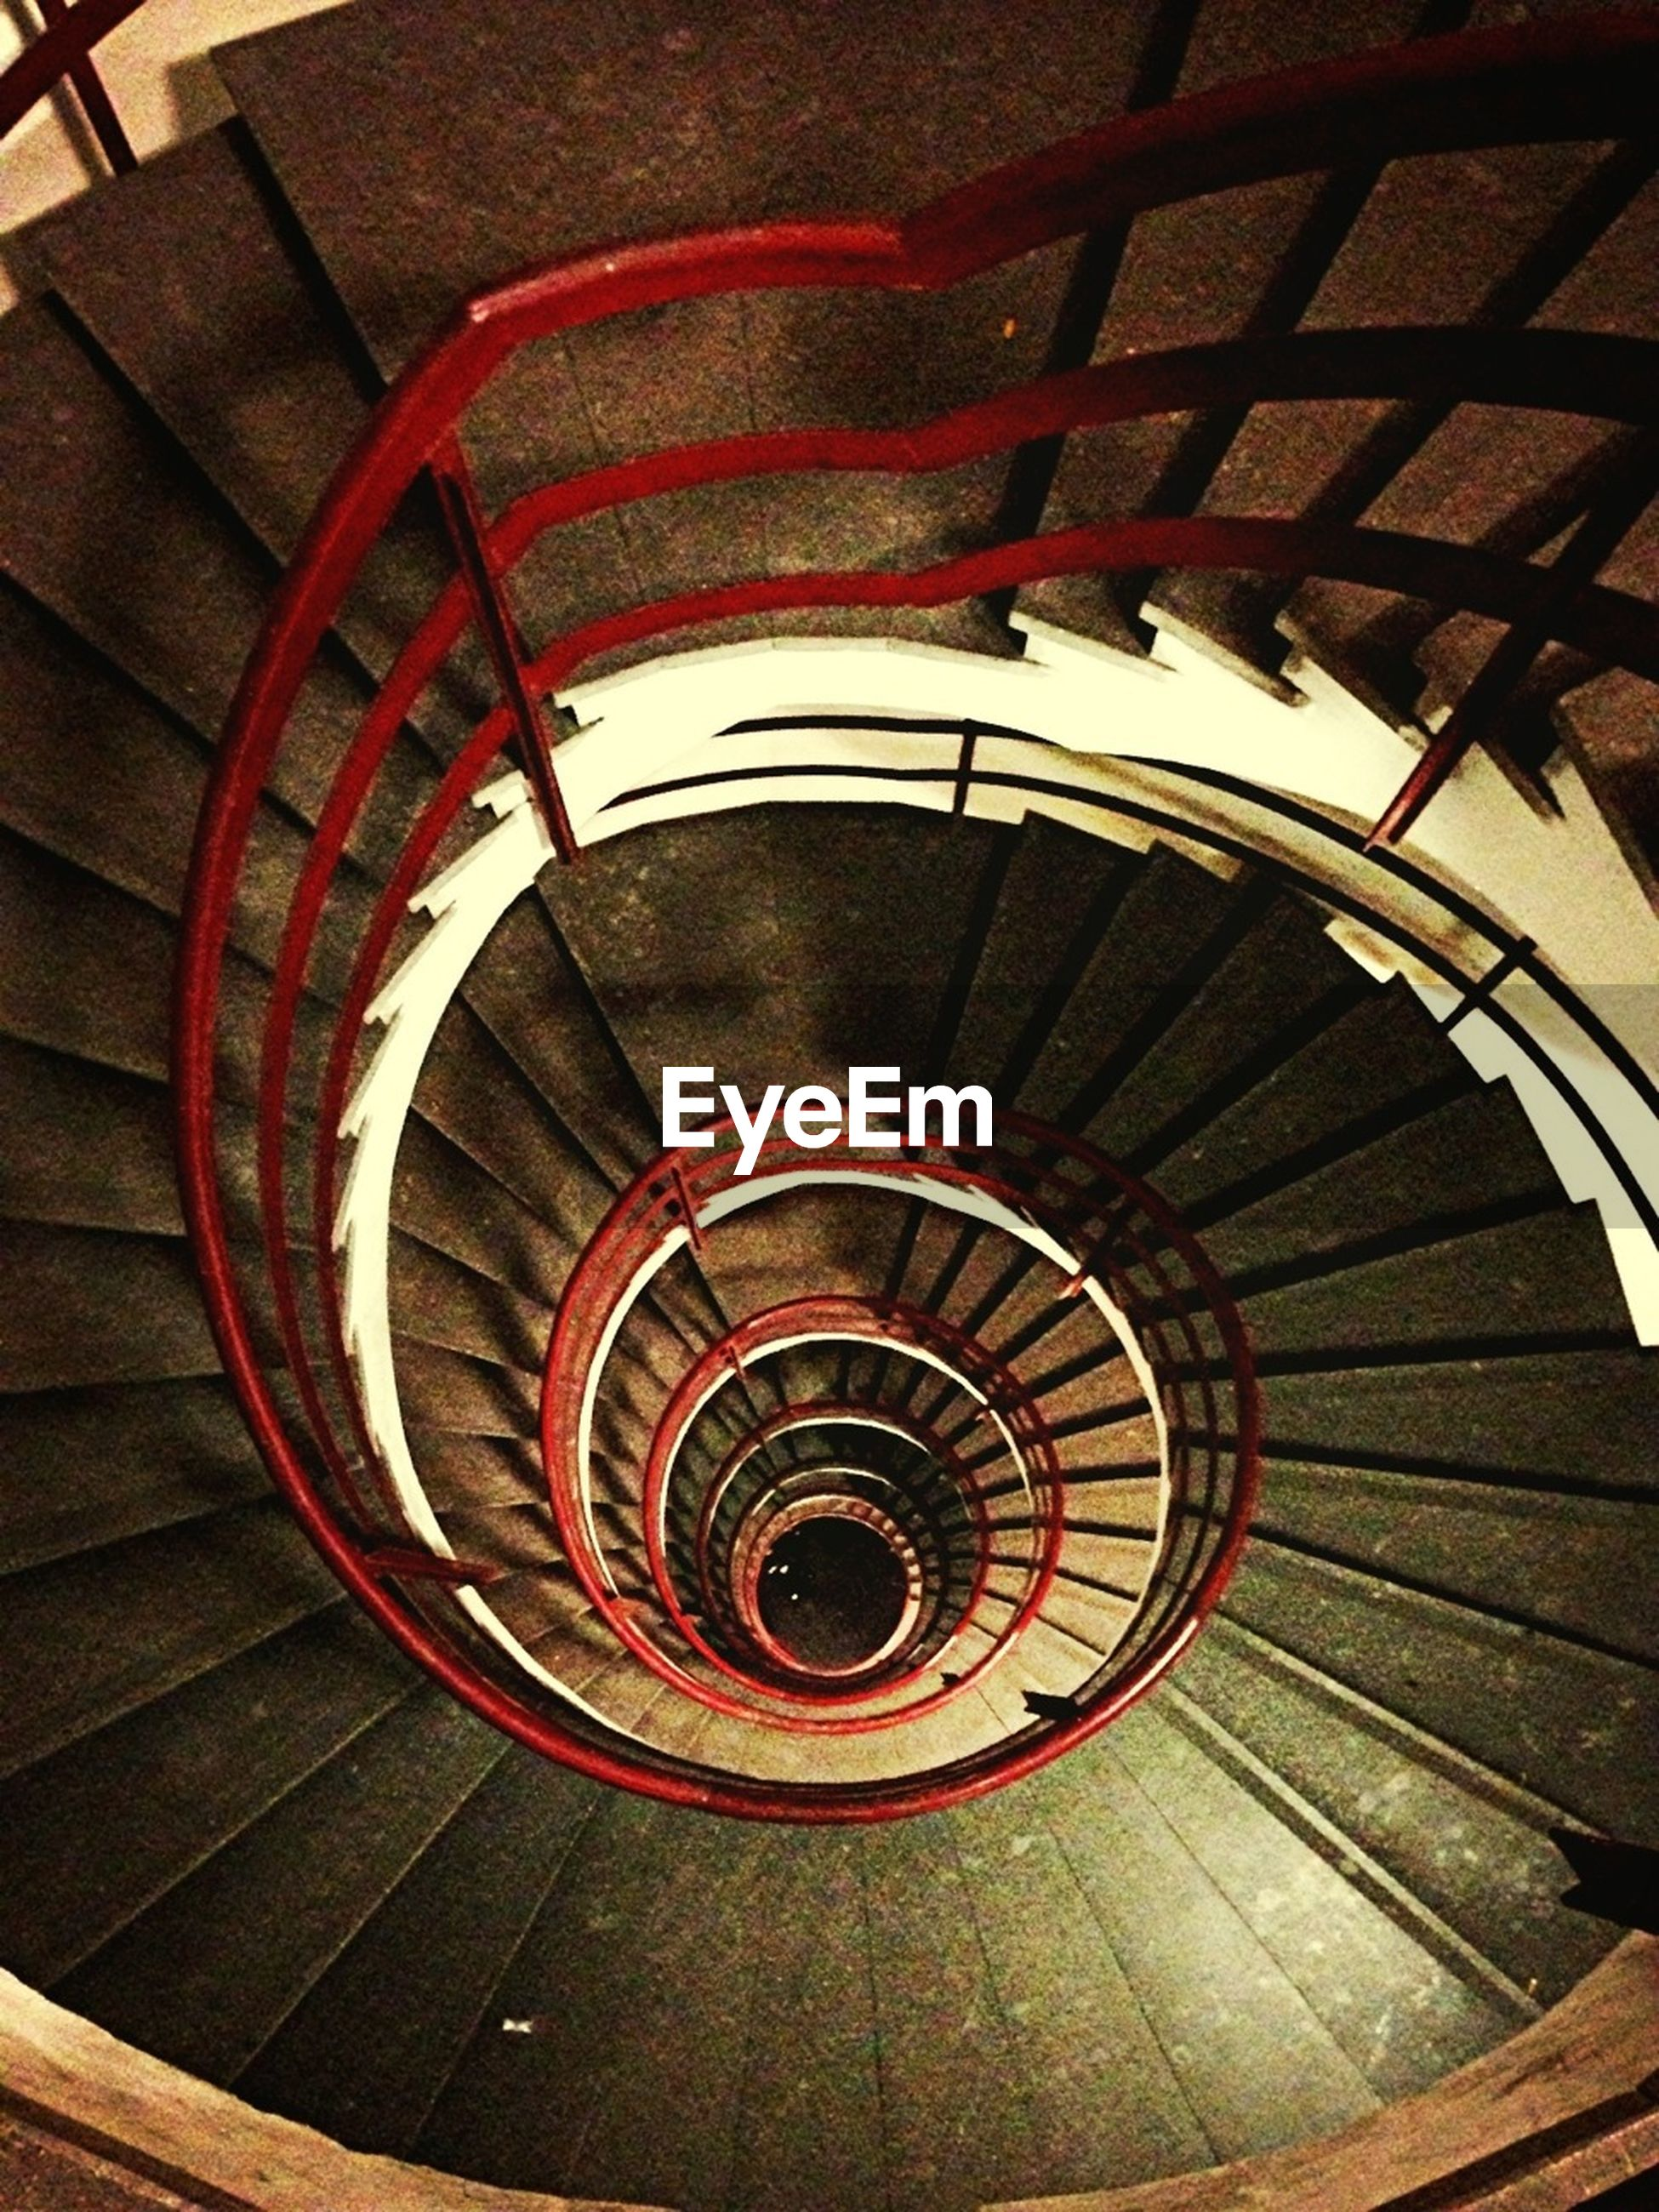 steps and staircases, steps, staircase, indoors, spiral staircase, spiral, railing, built structure, high angle view, architecture, pattern, stairs, ceiling, escalator, directly above, circle, diminishing perspective, design, modern, metal